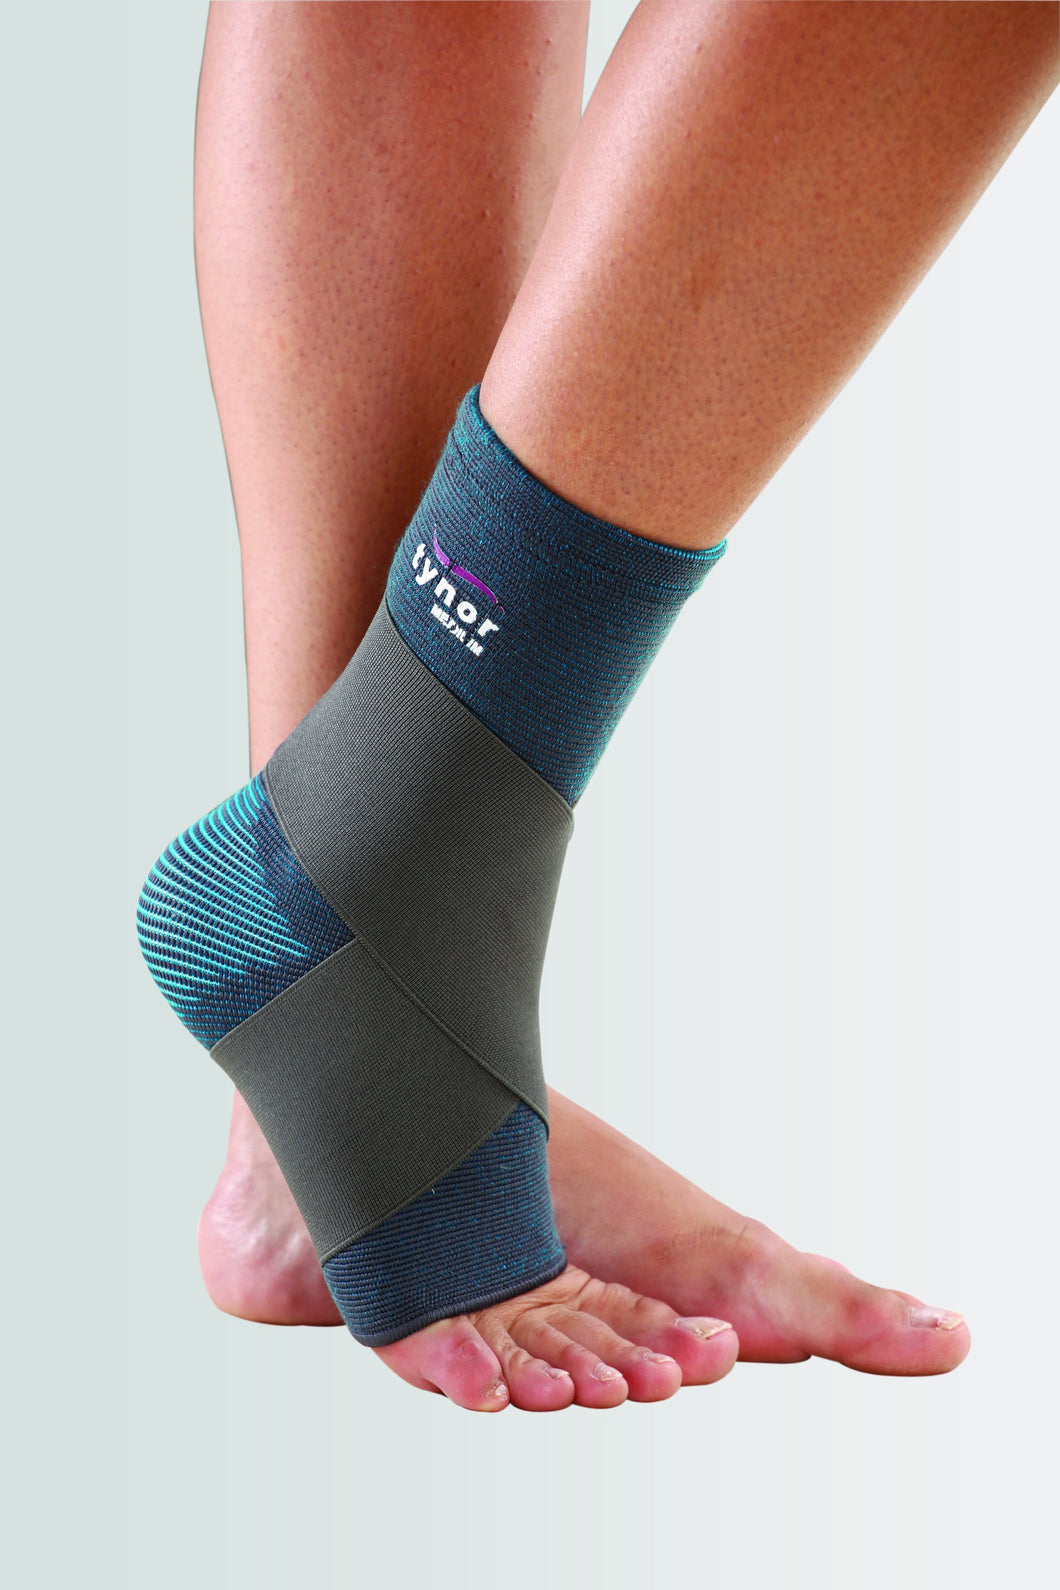 ANKLE BINDER - L